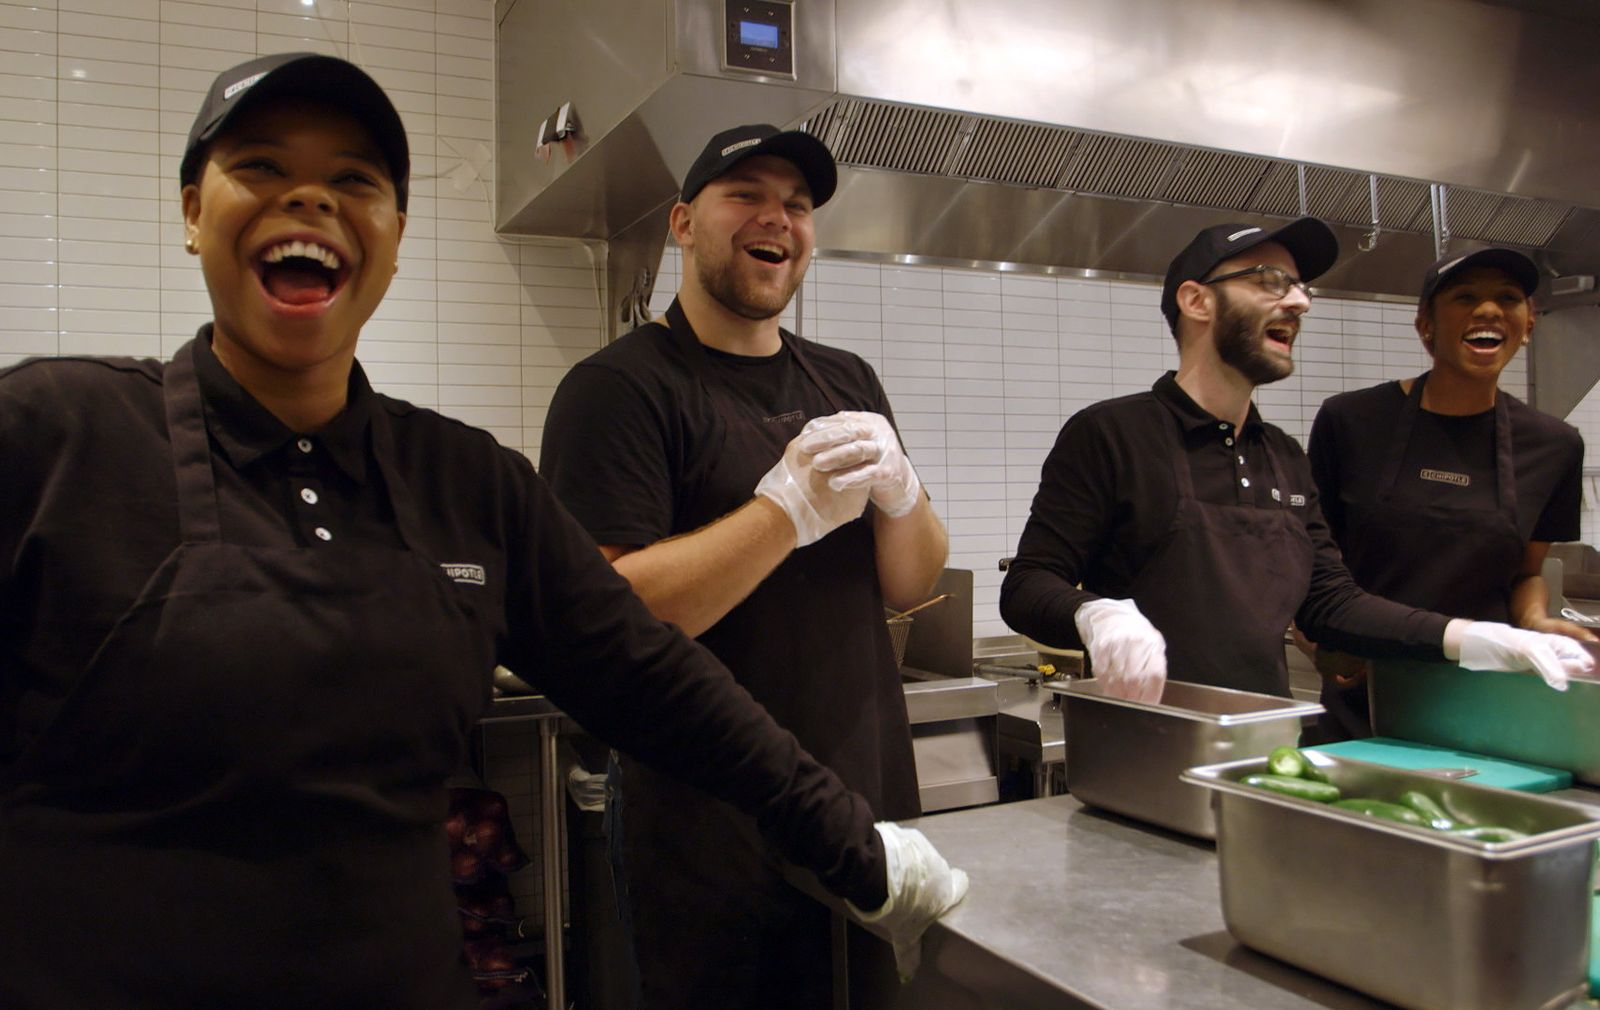 Over 2,600 Chipotle Crew Members Receive New Quarterly Bonus